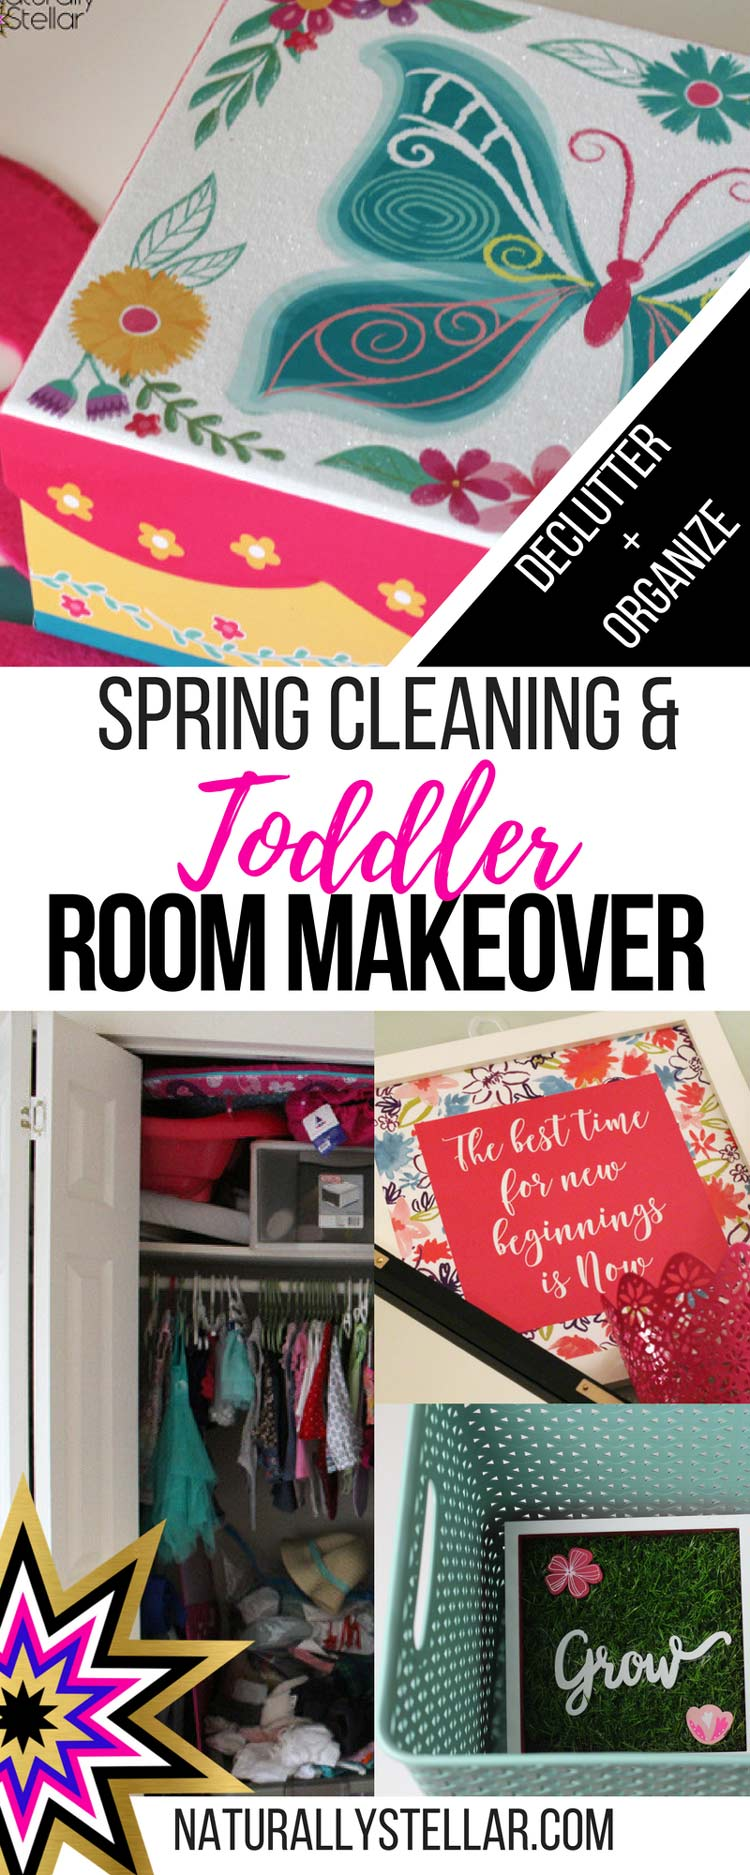 Toddler Room Makeover with Spring Cleaning | Naturally Stellar